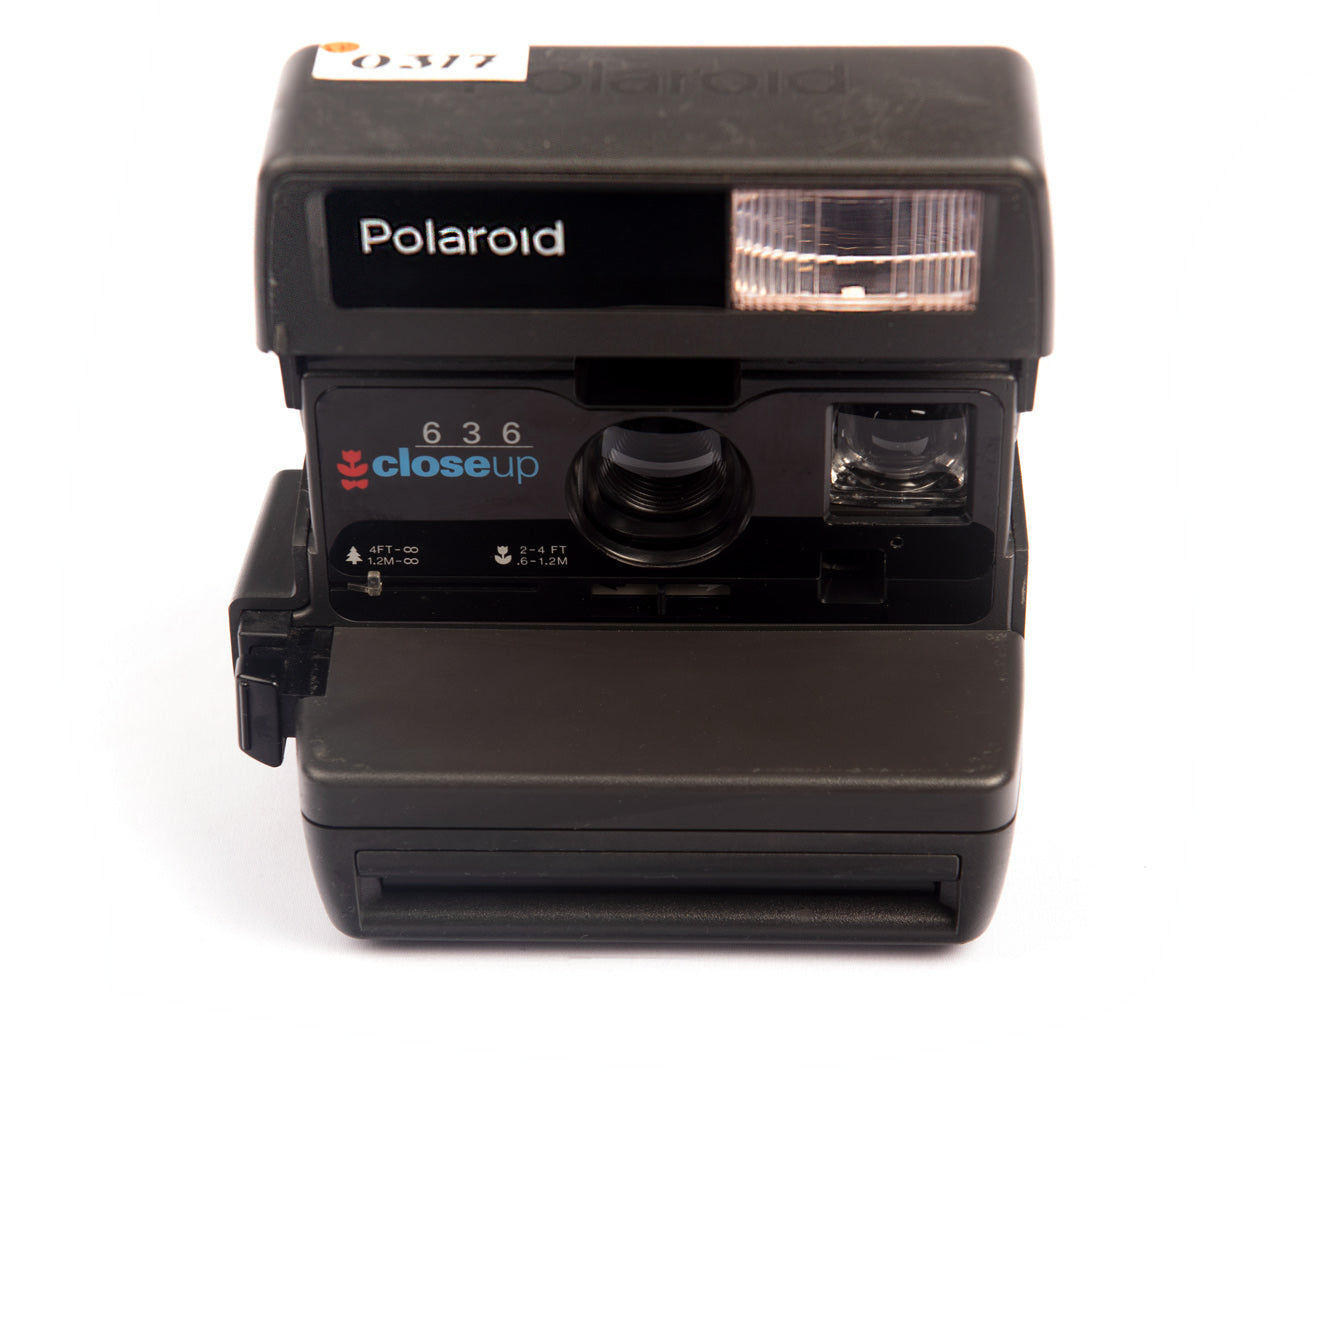 Polaroid 636 Closeup Camera 1317